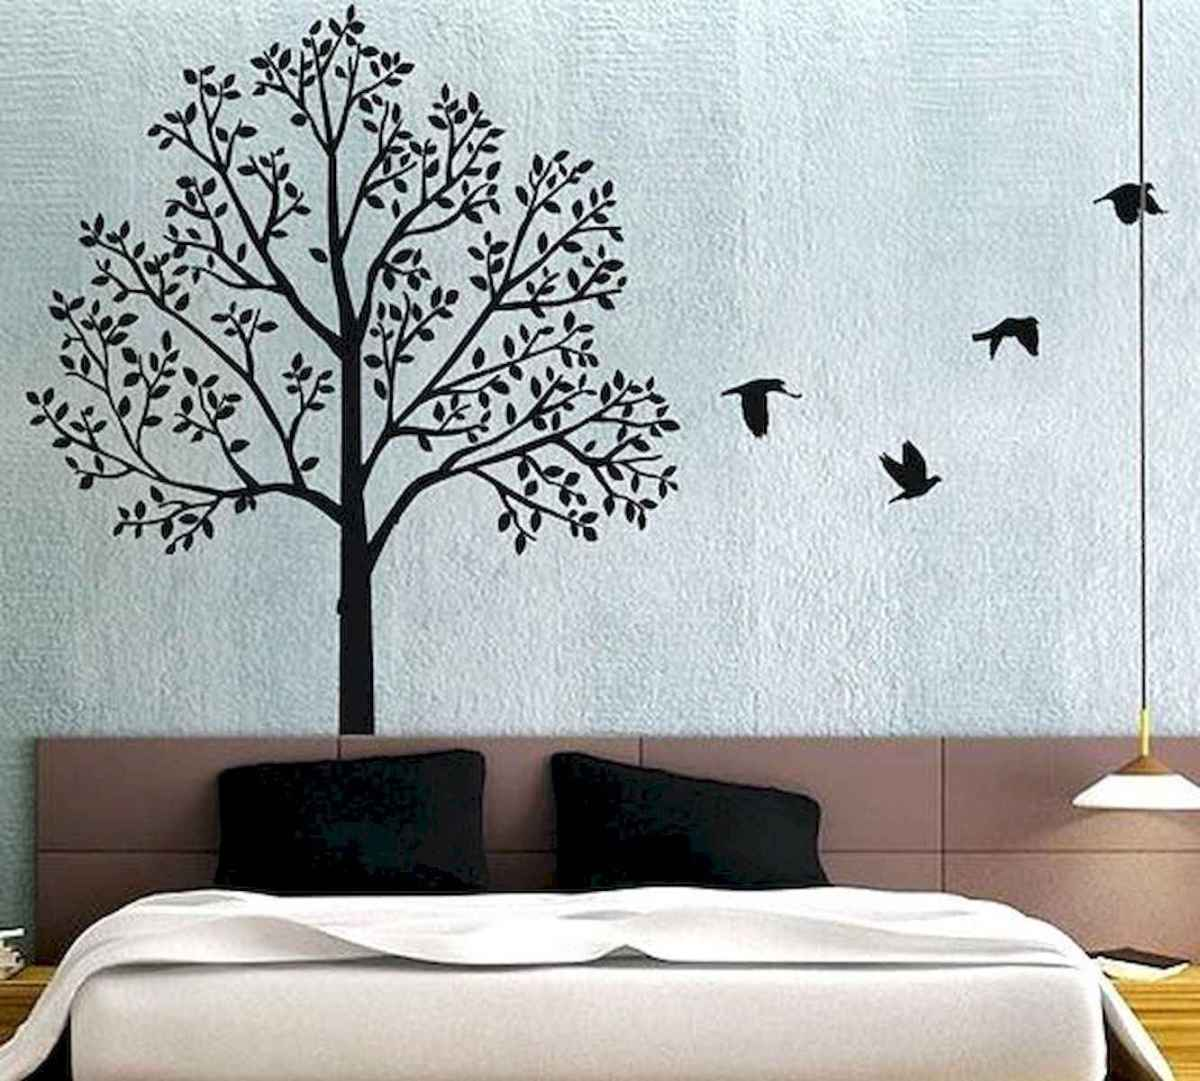 40 Awesome Wall Painting Ideas For Home (23)